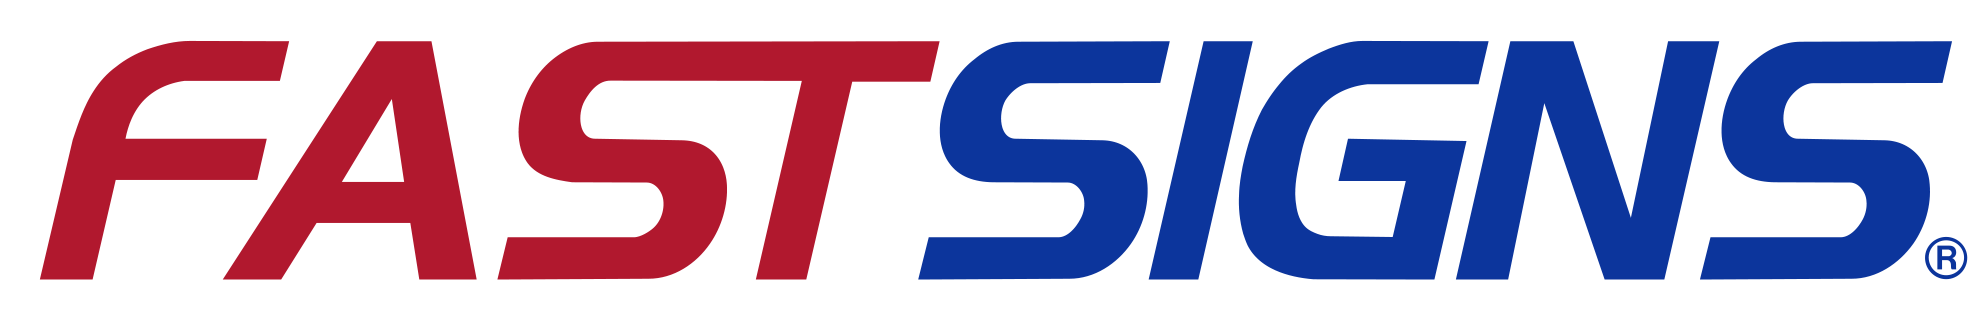 FASTSIGNS_LOGO